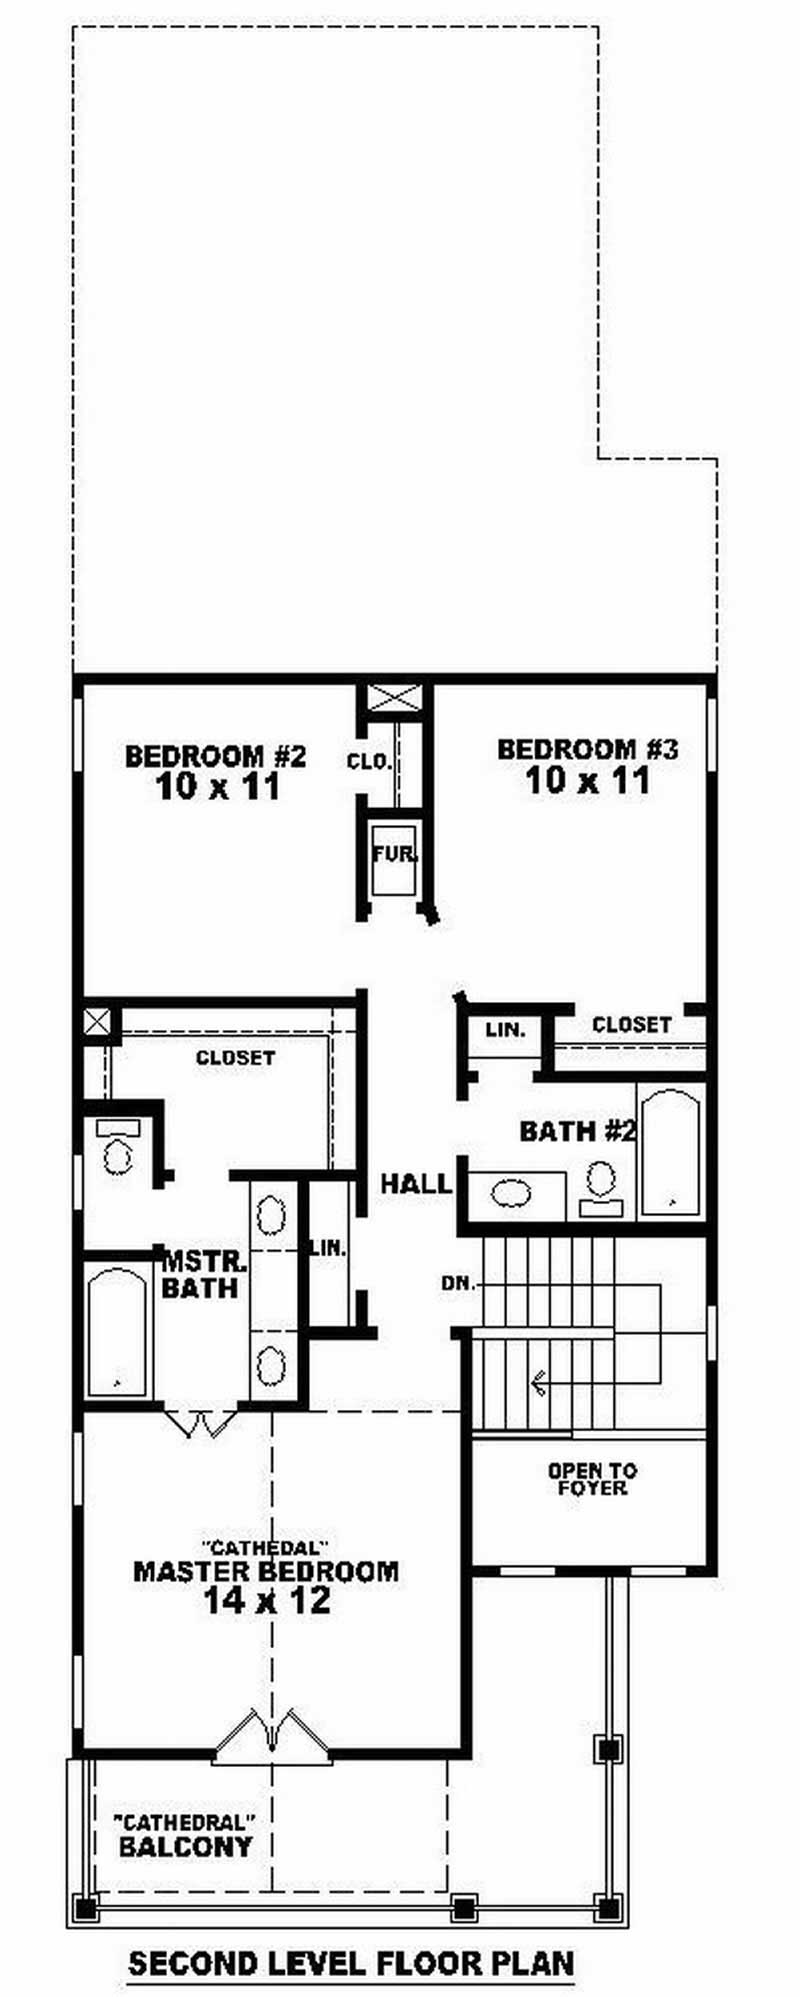 House Plan 170 2880 3 Bedroom 1670 Sq Ft Coastal